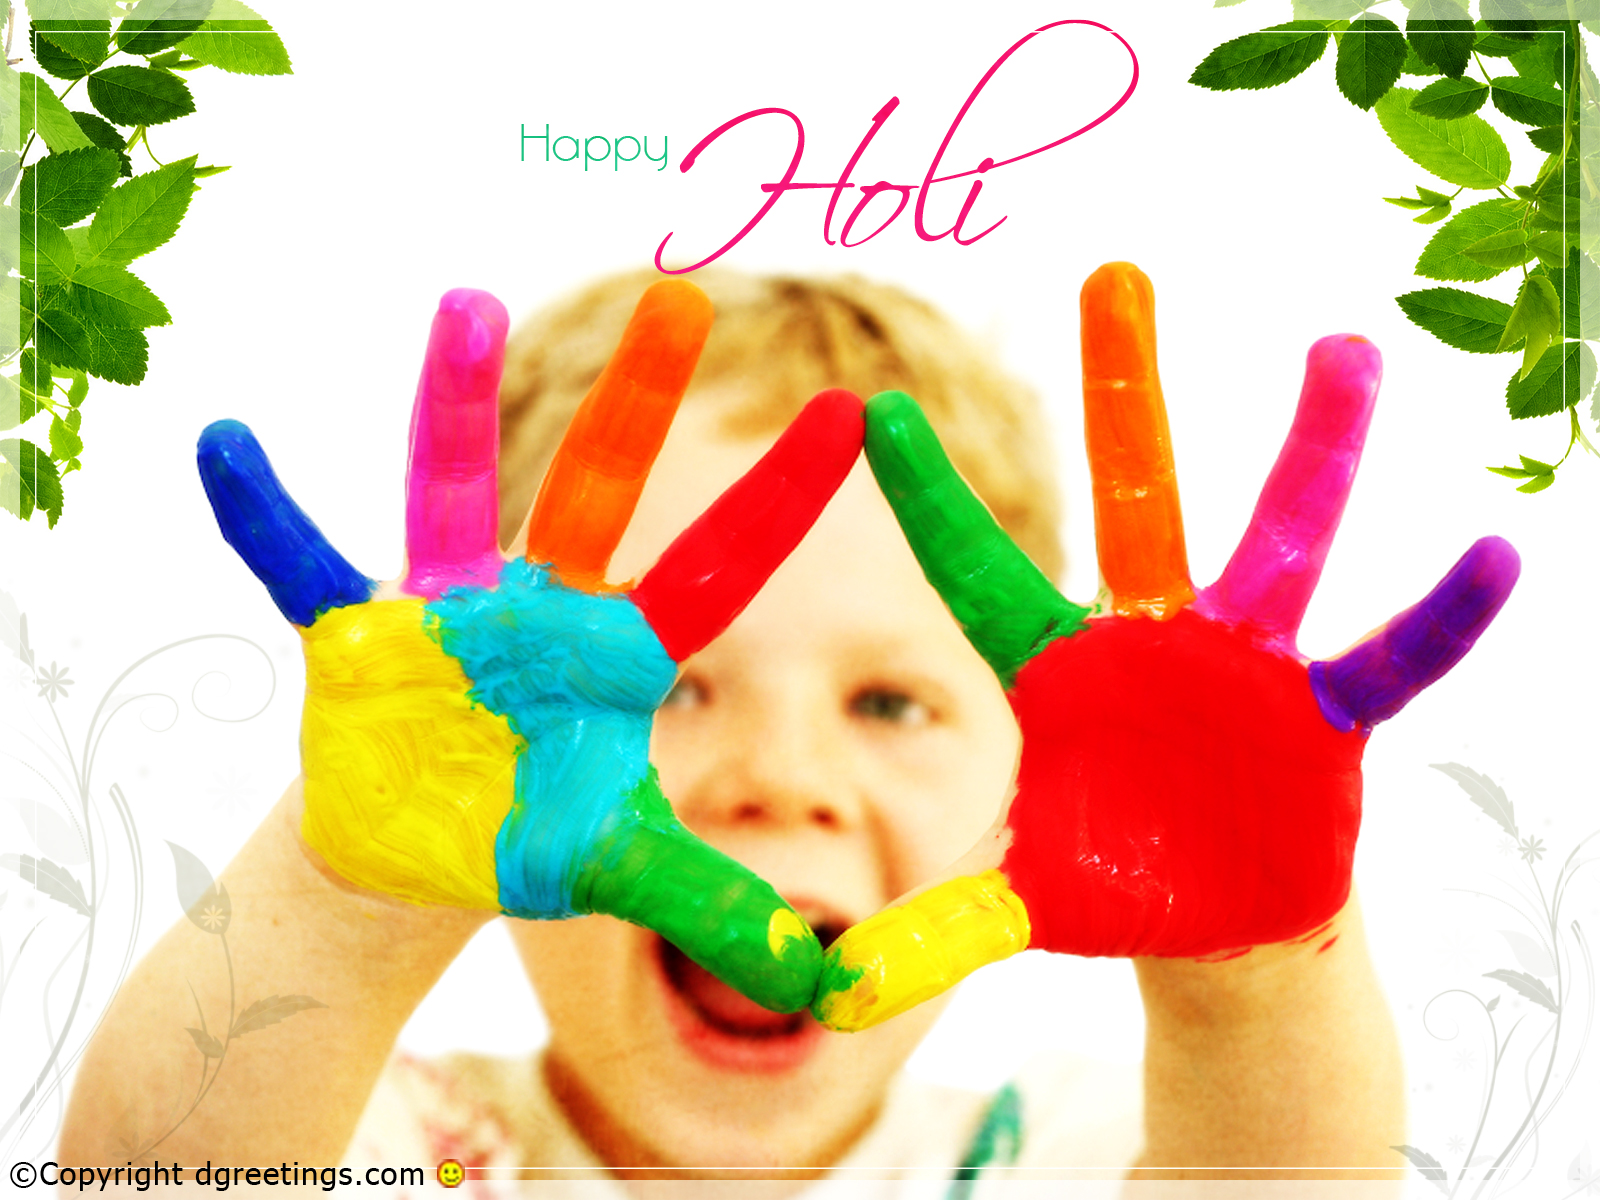 Holi wallpapers of different sizes wallpapersdgreetingscom 1600x1200